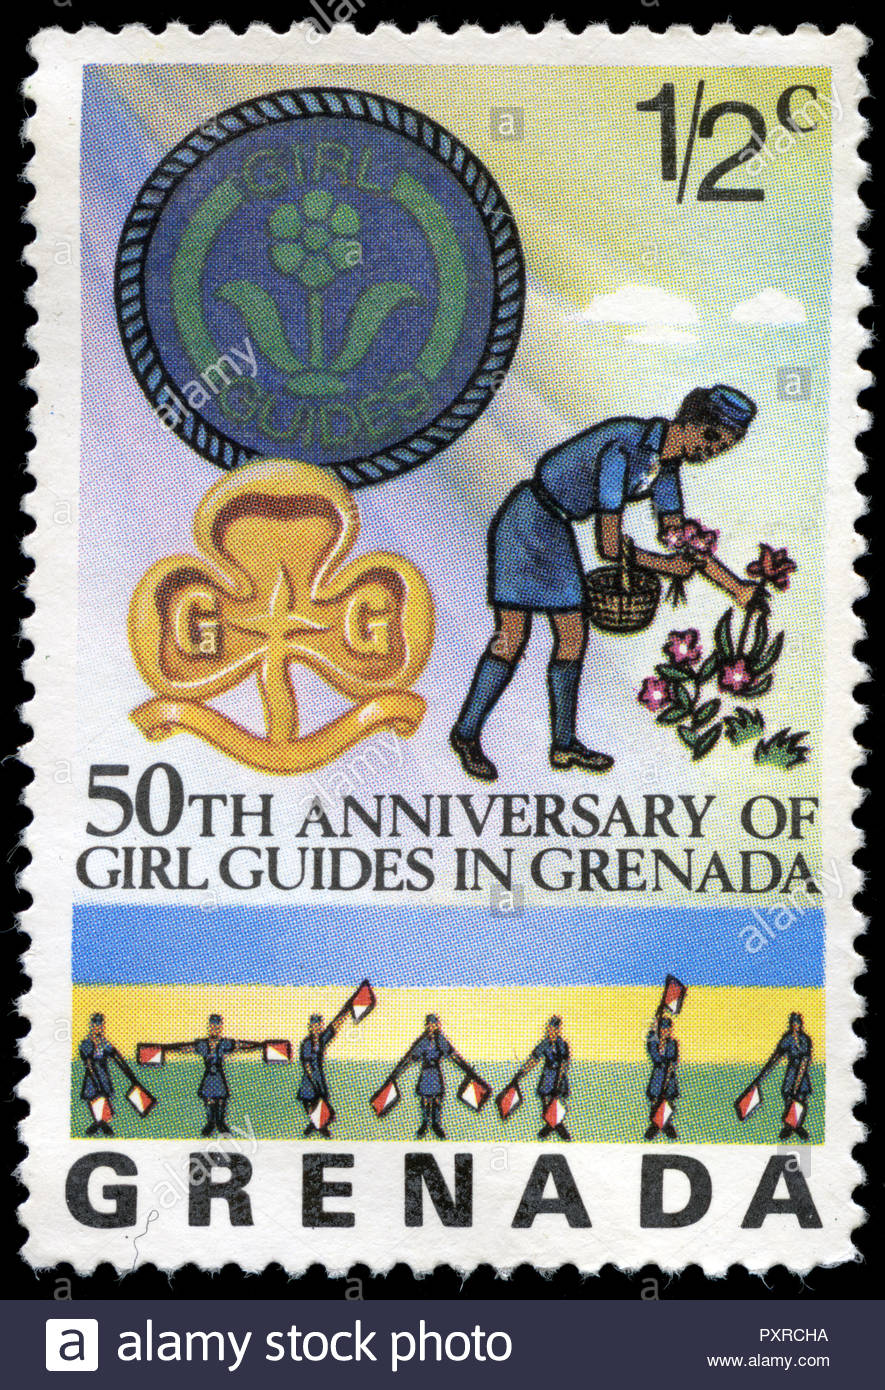 Postmarked Stamp From Grenada In The 50th Anniversary Of Girls Guides Series Issued 1976